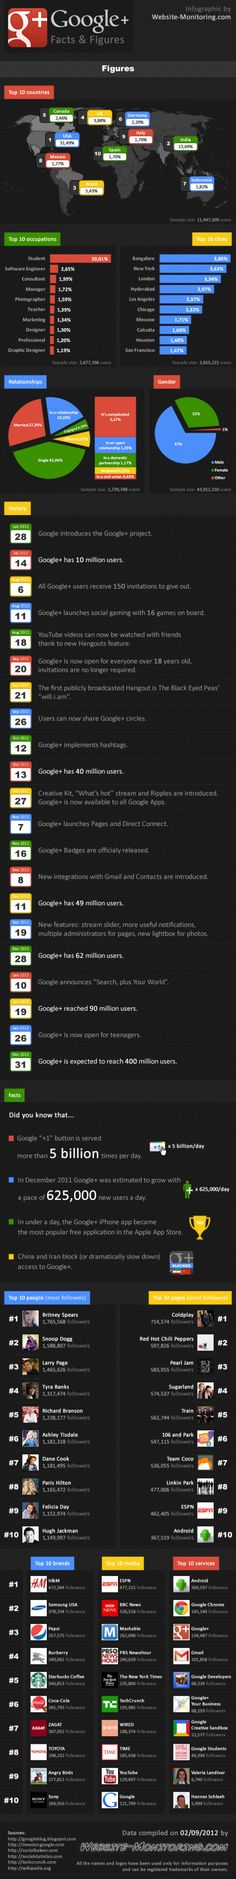 Facts & Figures about Google+